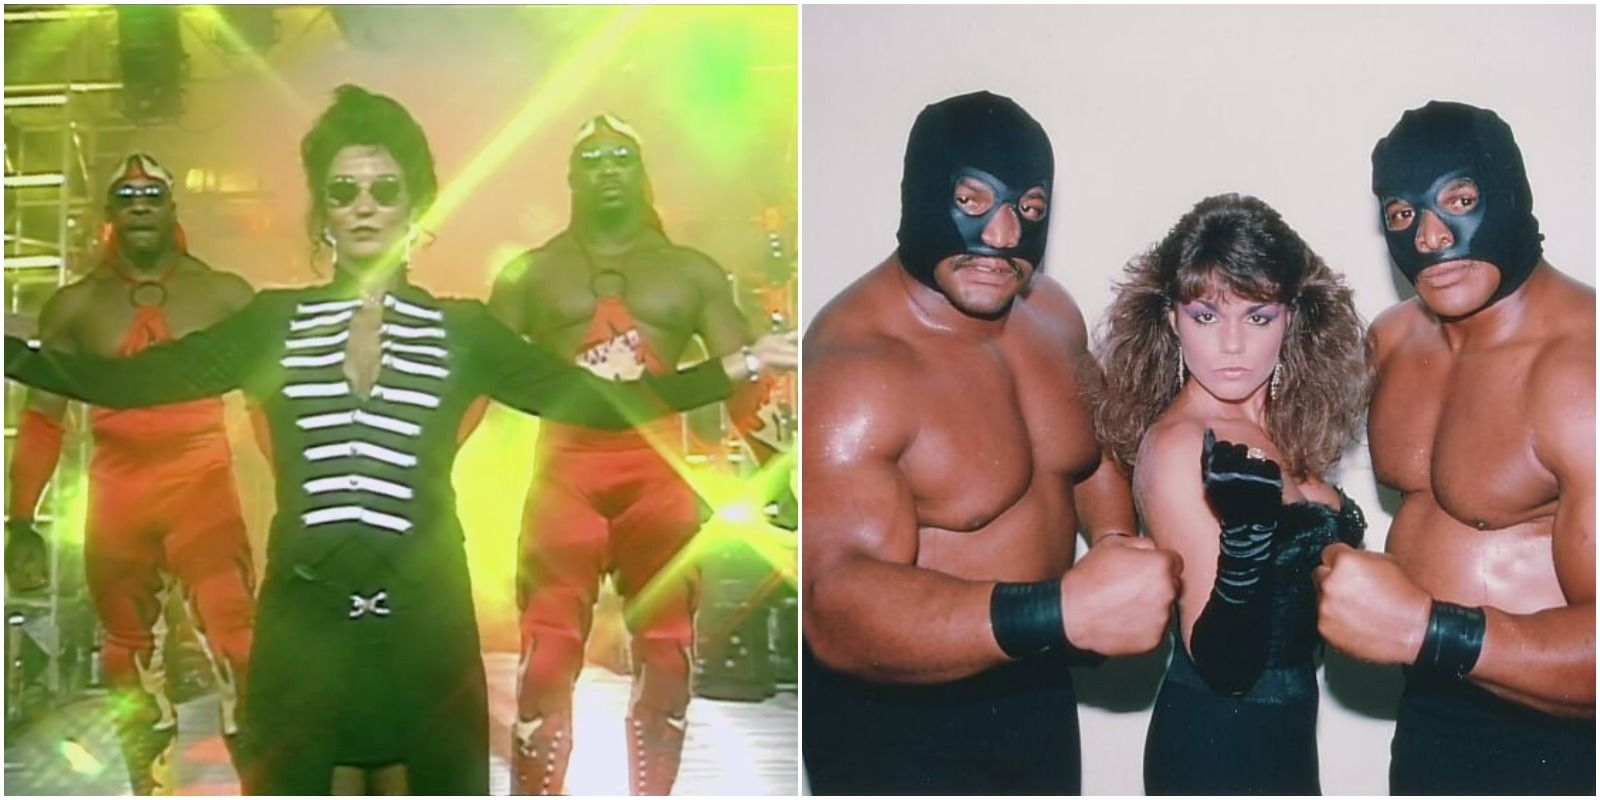 Mount Rushmore: The 10 Best Tag Teams Who Never Worked In WWE